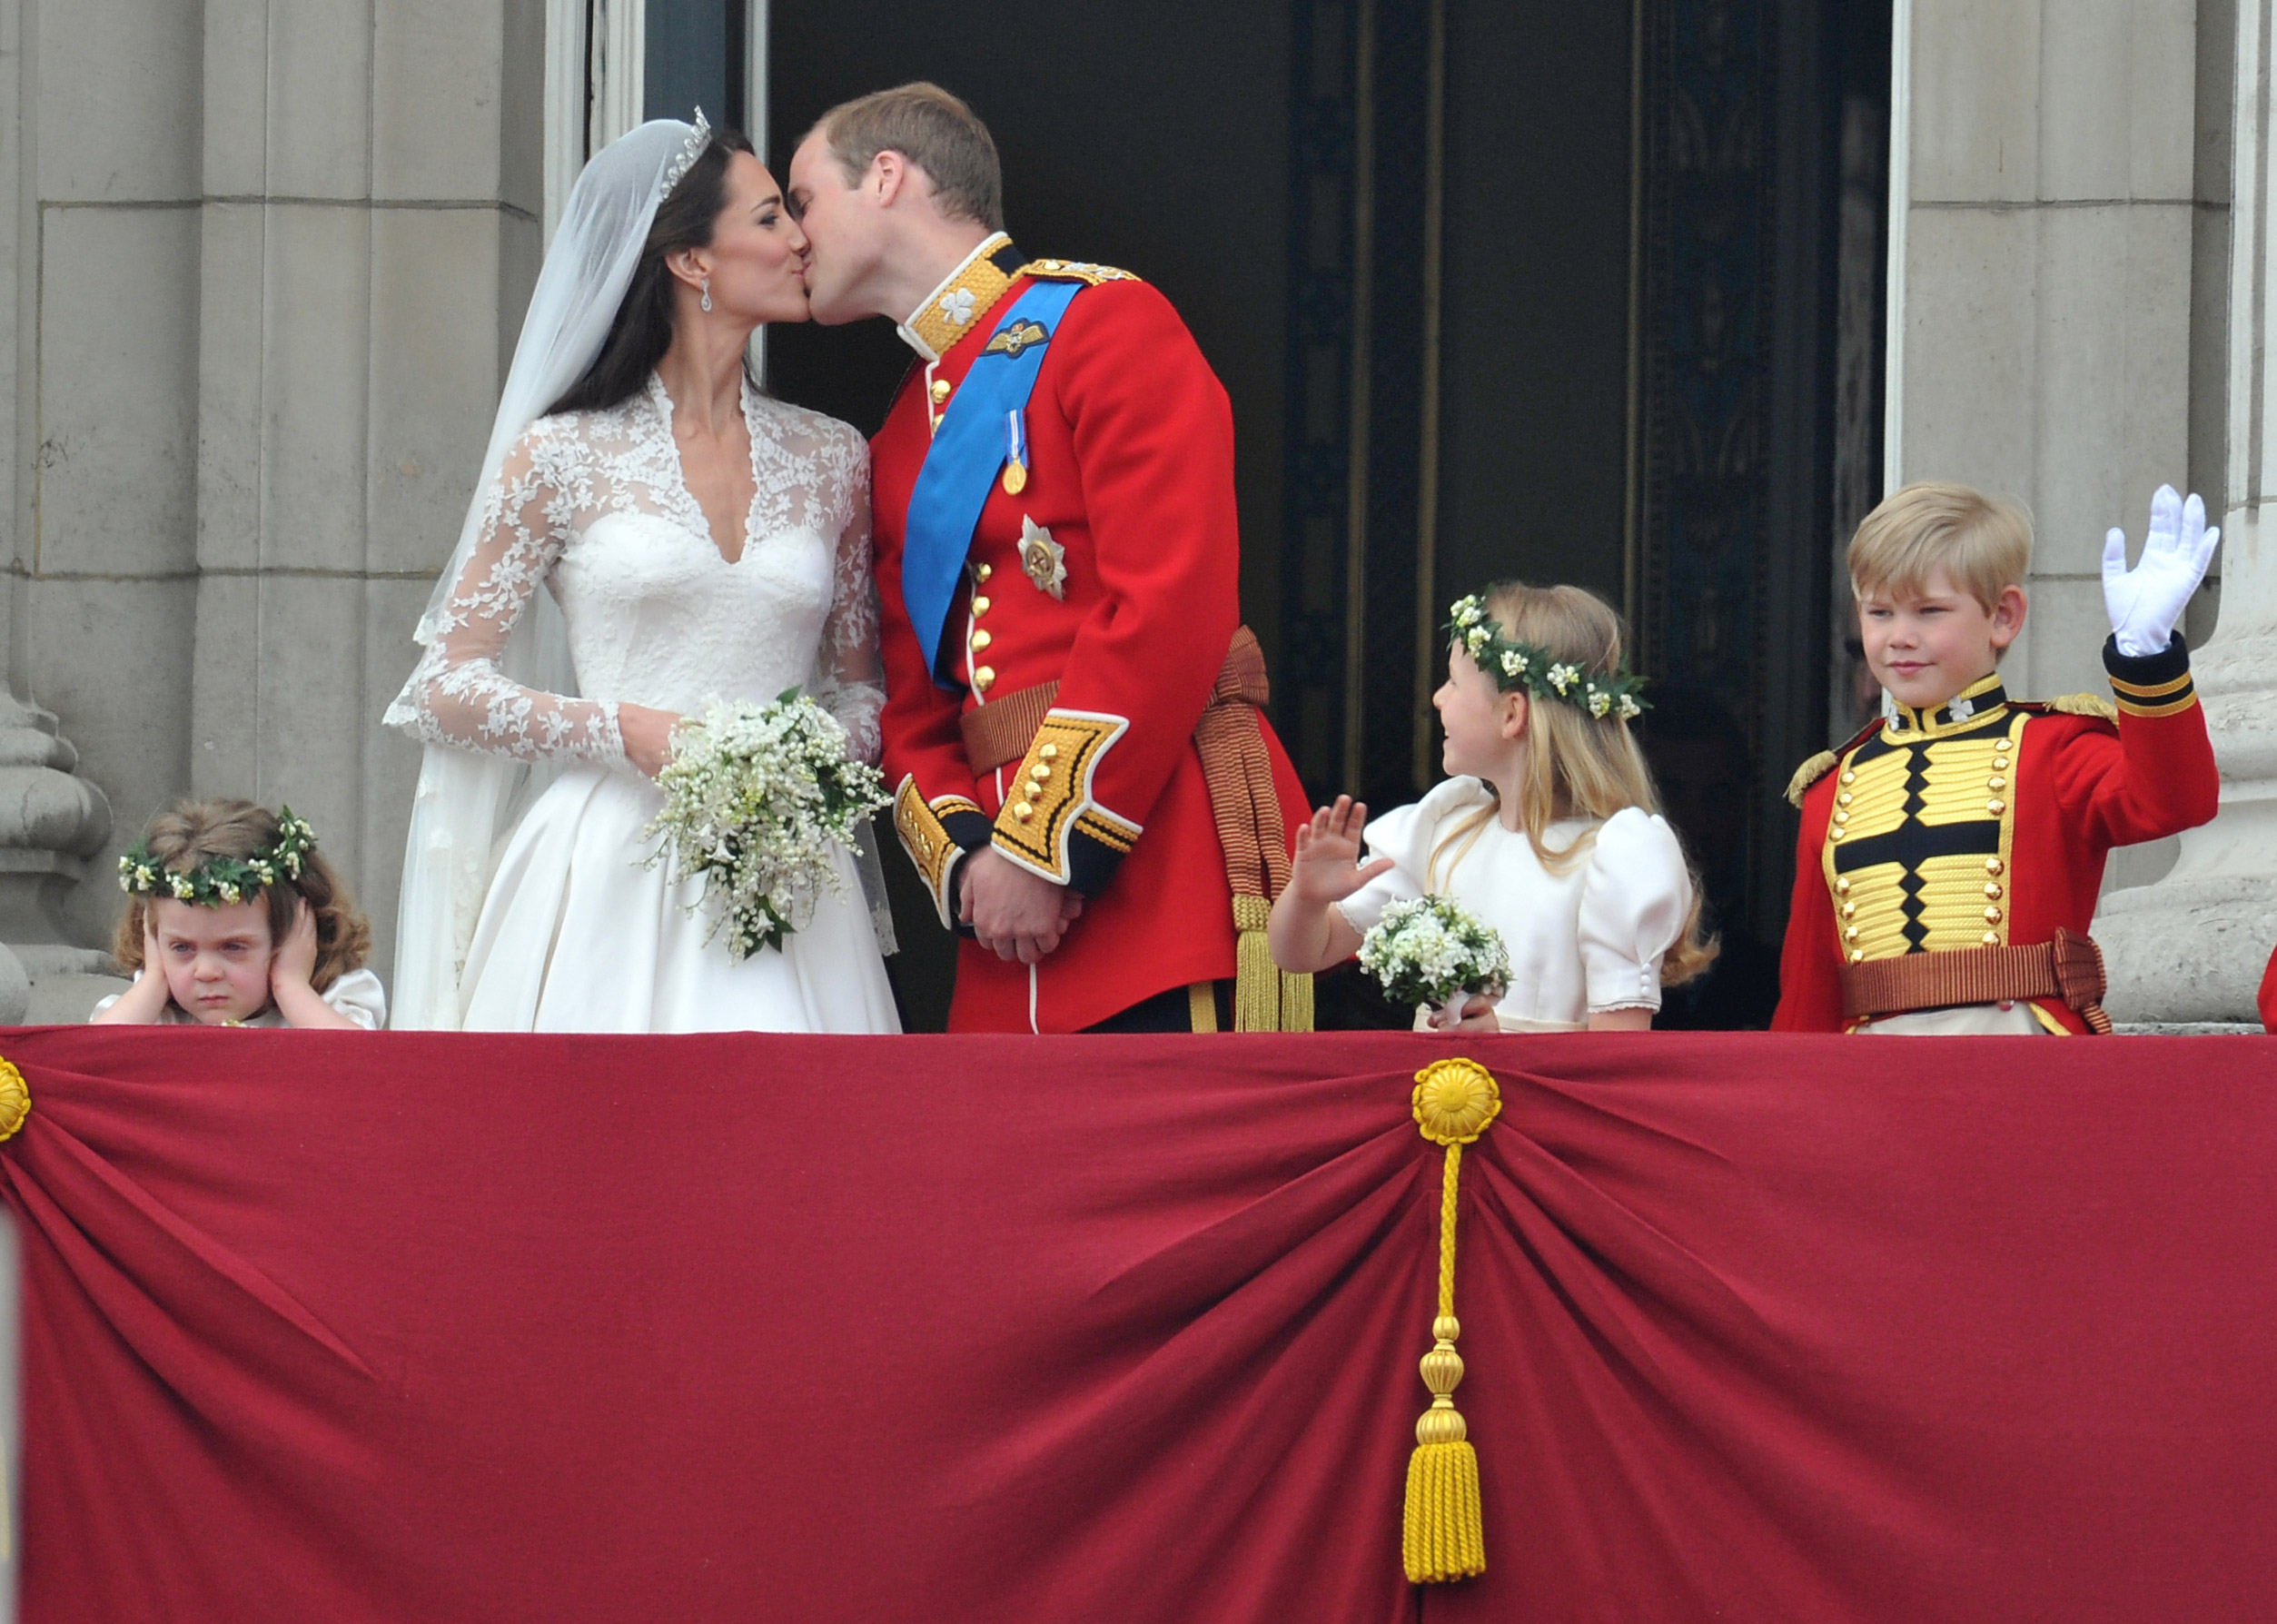 Princess Catherine and Prince William—with attendants—on the balcony of Buckingham Palace in London, Britain, April 29, 2011, after their marriage ceremony.